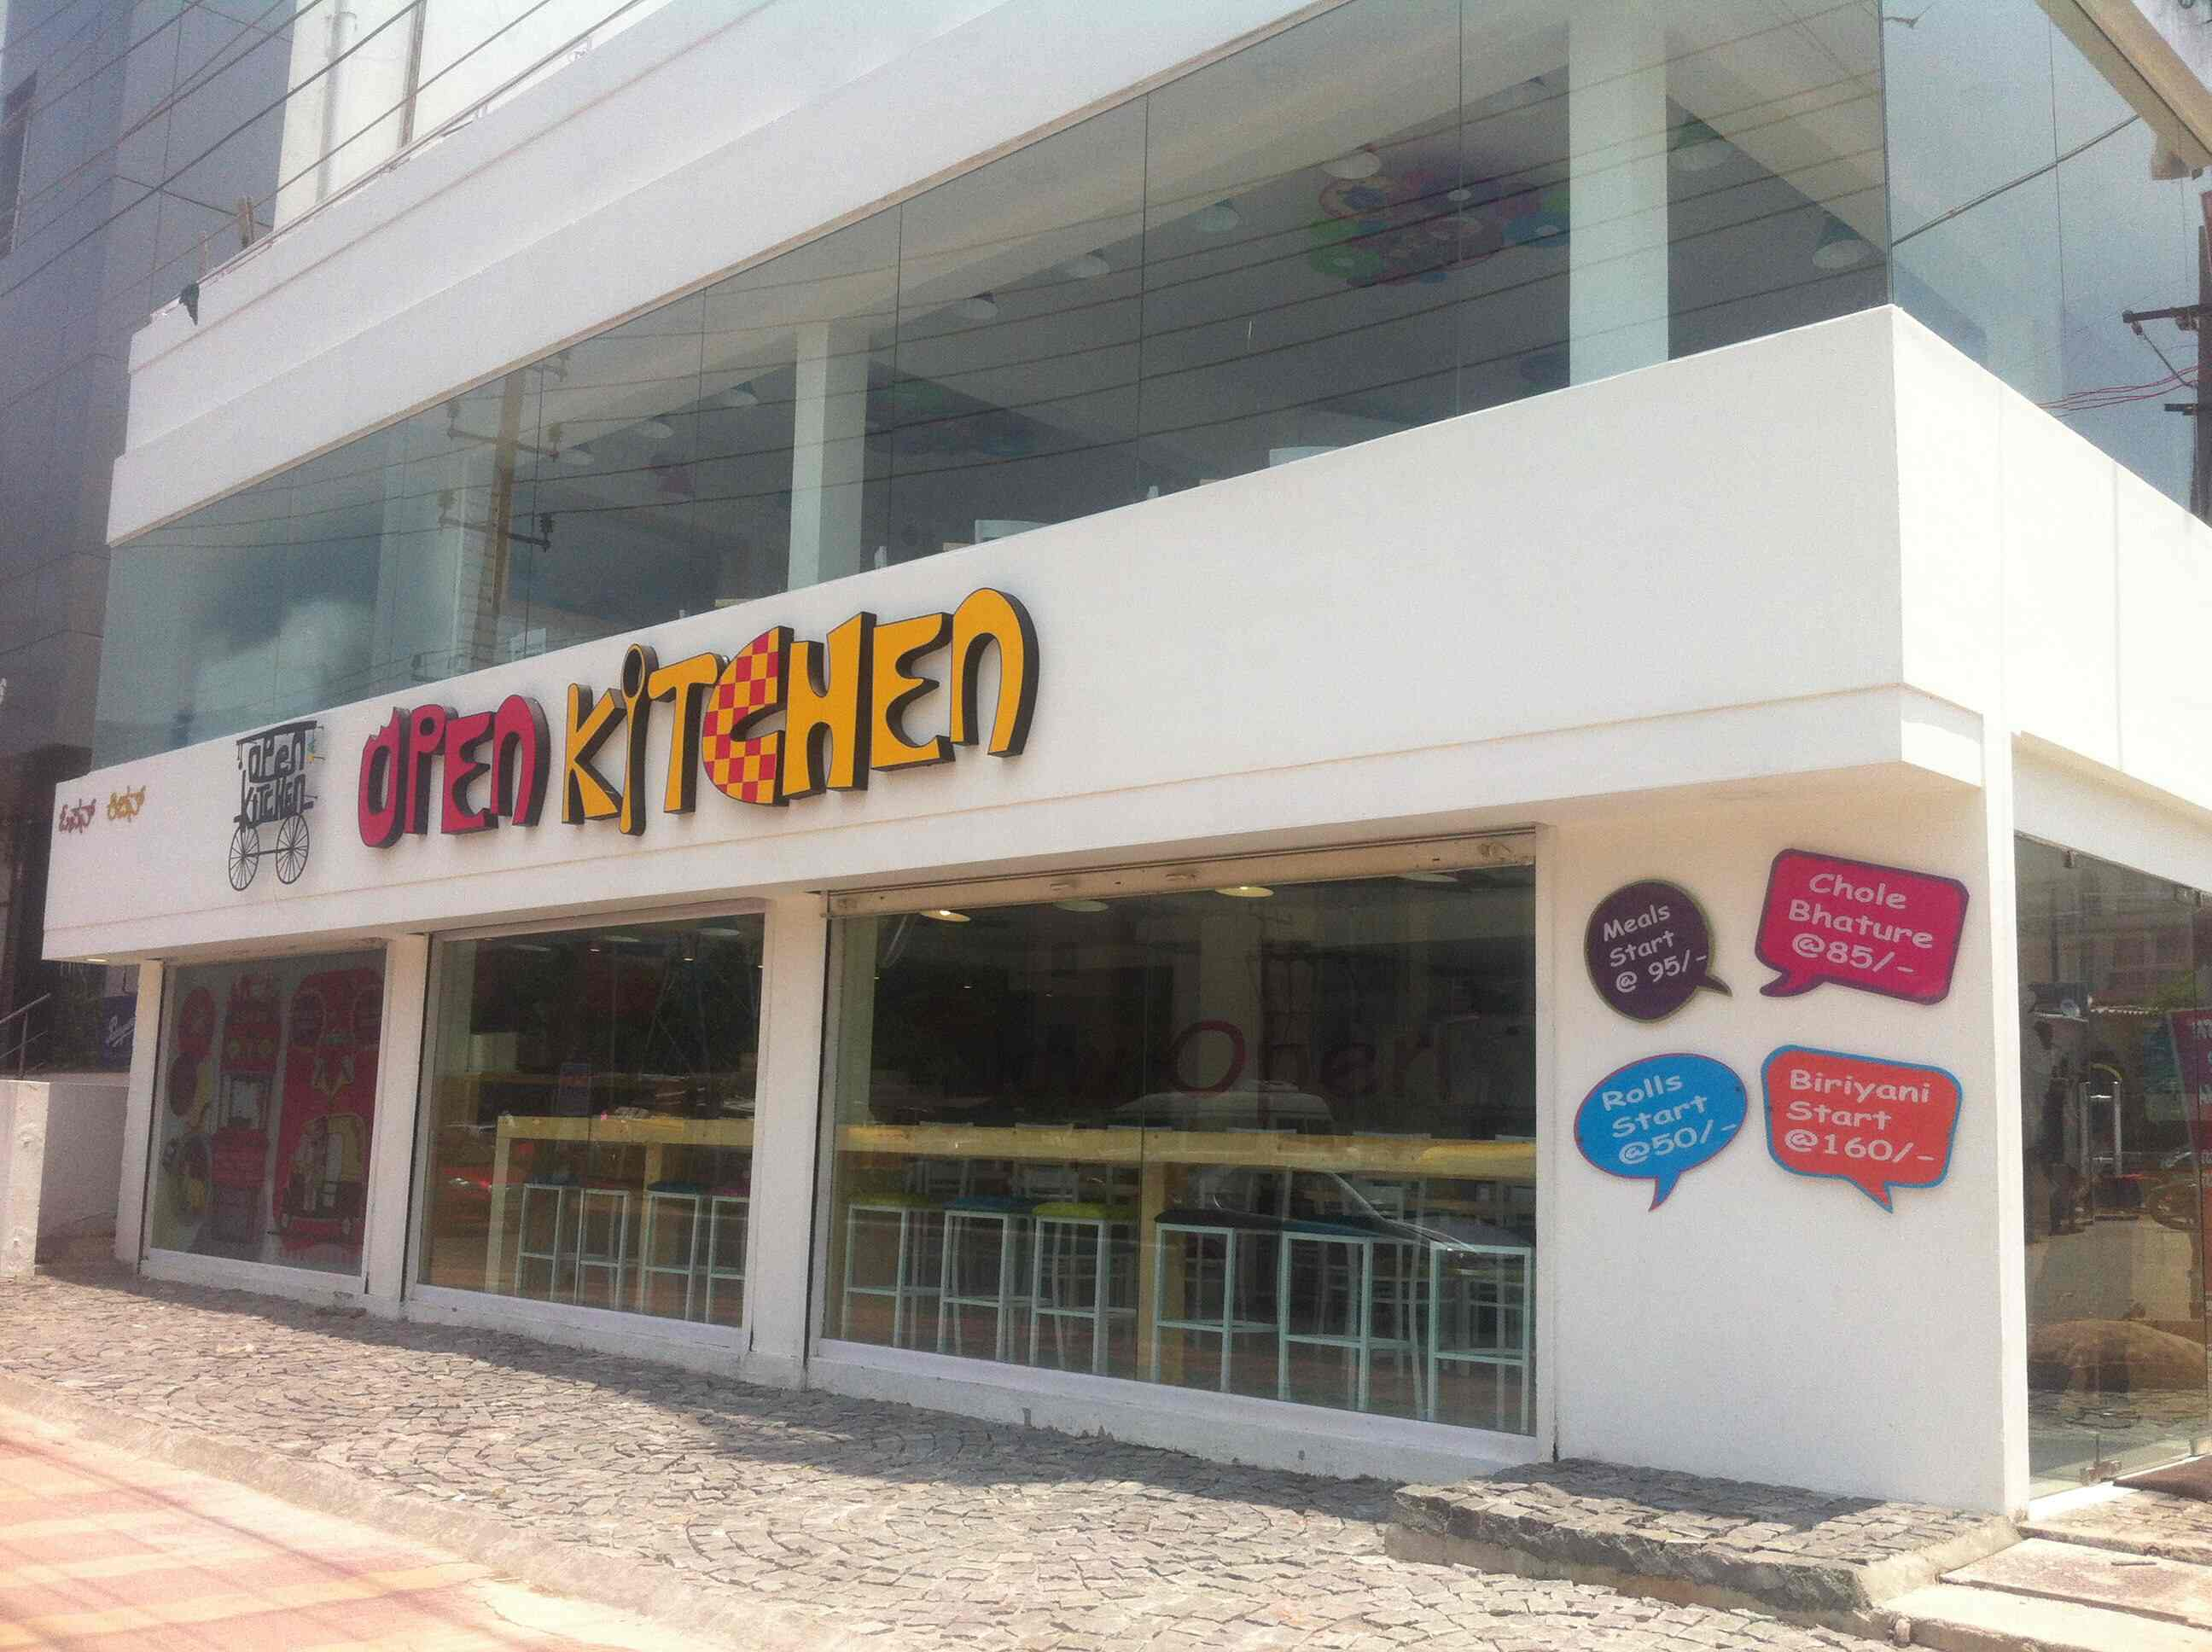 Open Kitchen - Domlur - Bangalore Image